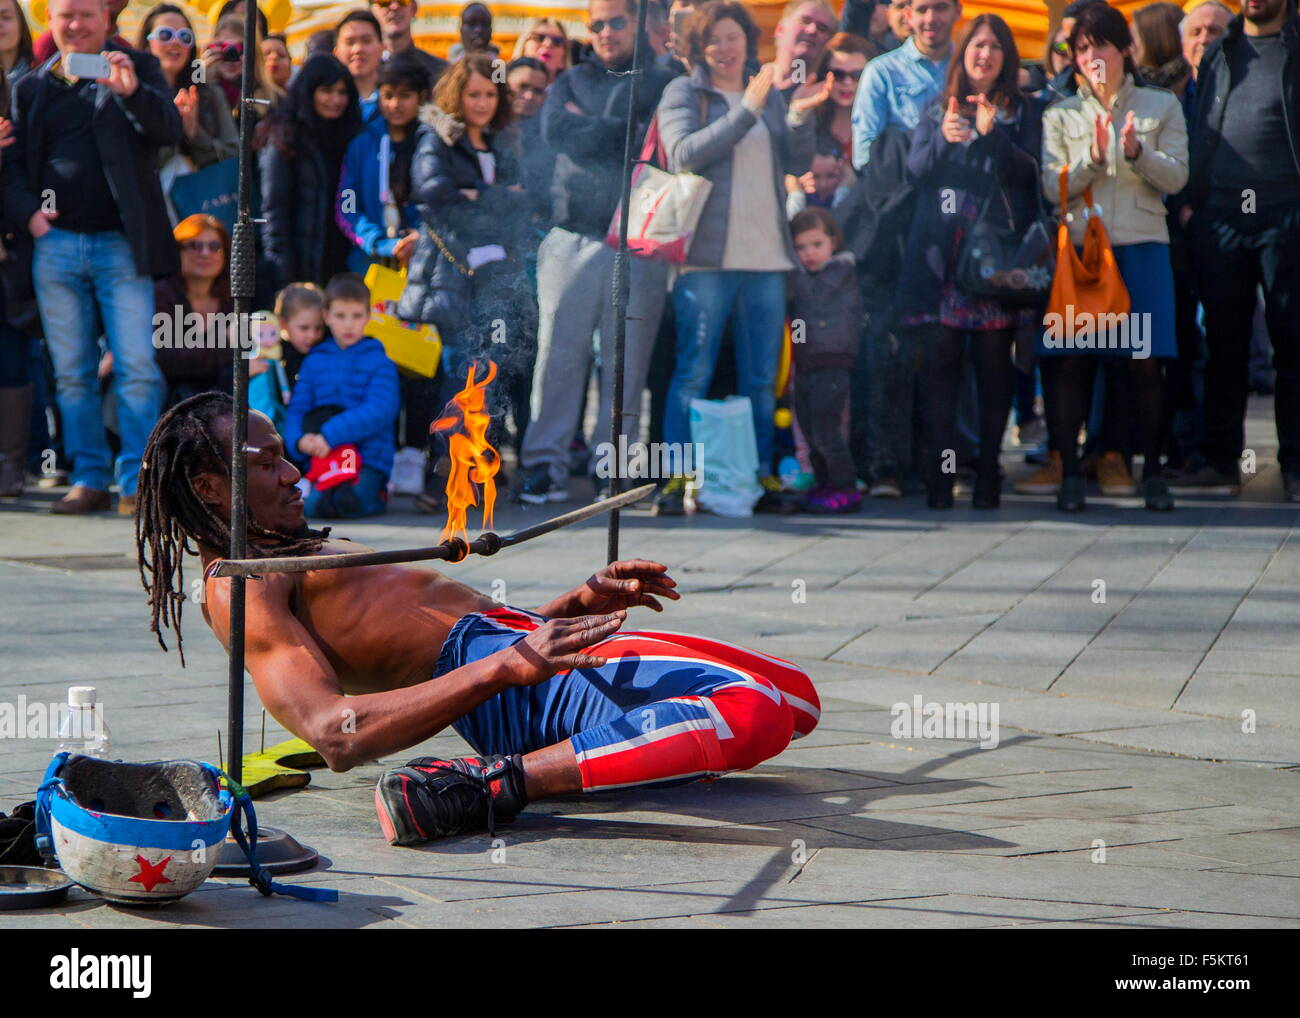 Street performer in London at Leicester Square - Stock Image